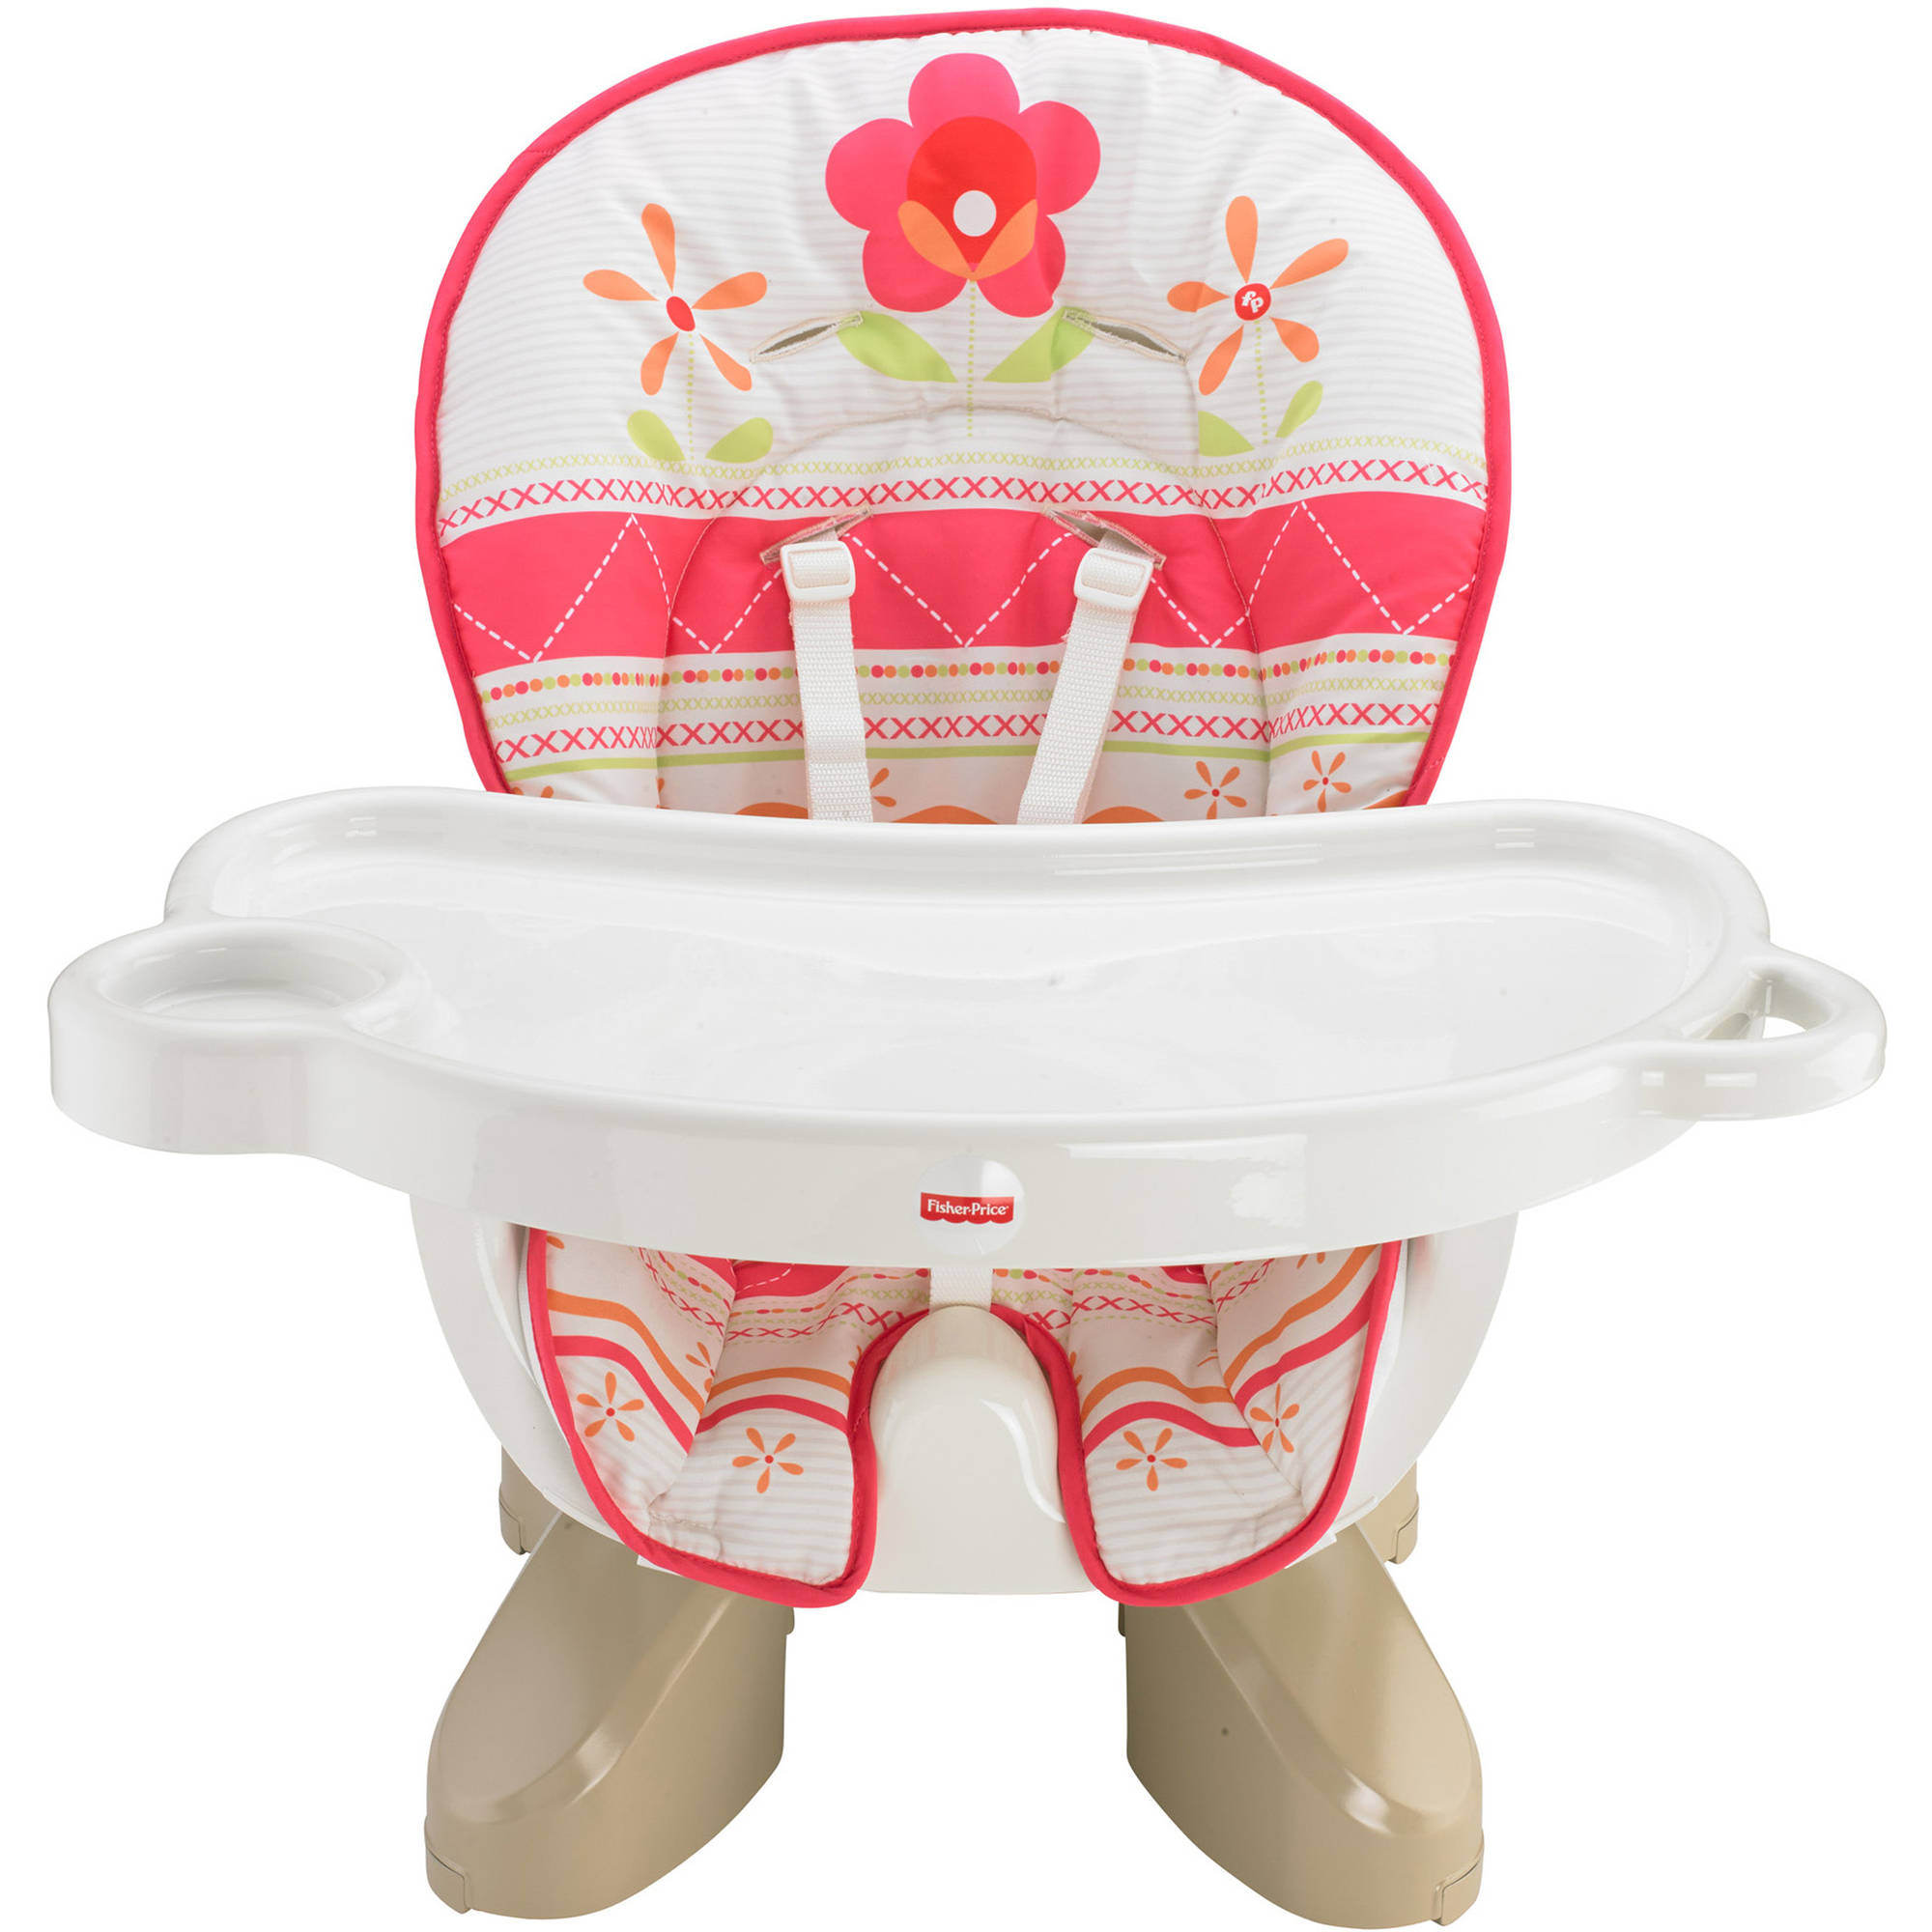 Fisher-Price SpaceSaver High Chair, Sunny Flower